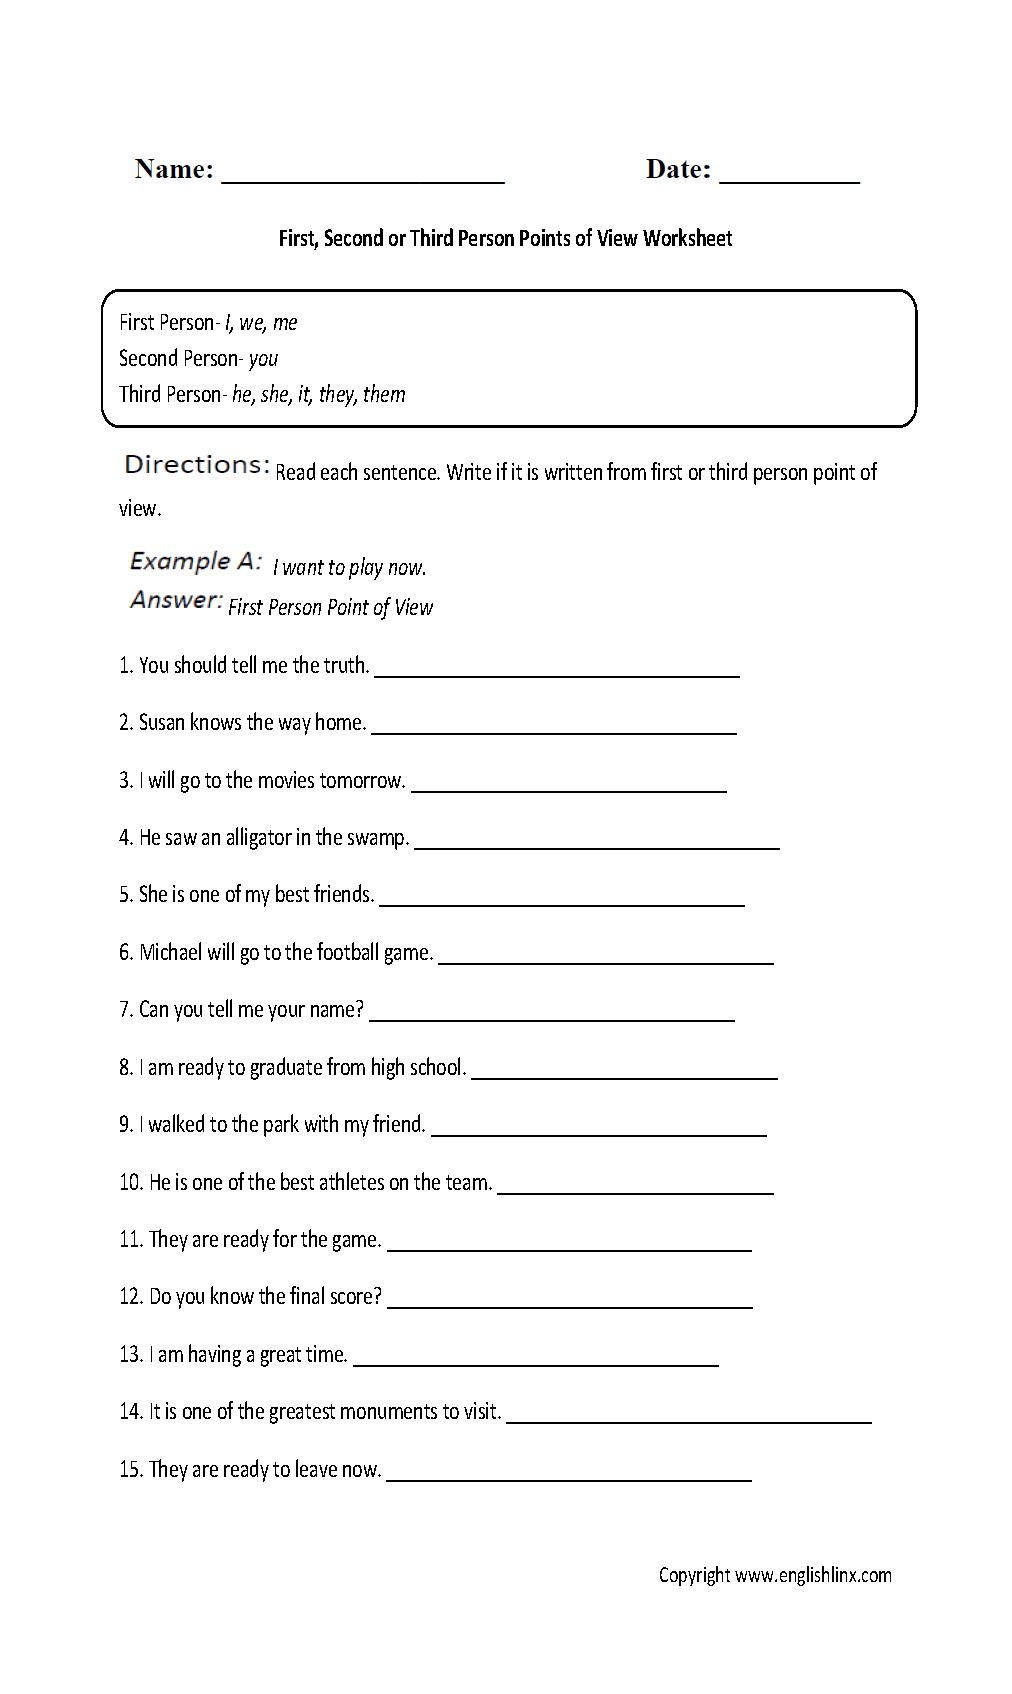 Proatmealus  Stunning Englishlinxcom  Point Of View Worksheets With Goodlooking Point Of View Worksheet With Breathtaking Cause And Effect Worksheets Th Grade Also Free Printable Black History Worksheets In Addition Free Th Grade Worksheets And The  Habits Of Happy Kids Worksheets As Well As Circulatory Worksheet Additionally  D Shapes Worksheet From Englishlinxcom With Proatmealus  Goodlooking Englishlinxcom  Point Of View Worksheets With Breathtaking Point Of View Worksheet And Stunning Cause And Effect Worksheets Th Grade Also Free Printable Black History Worksheets In Addition Free Th Grade Worksheets From Englishlinxcom